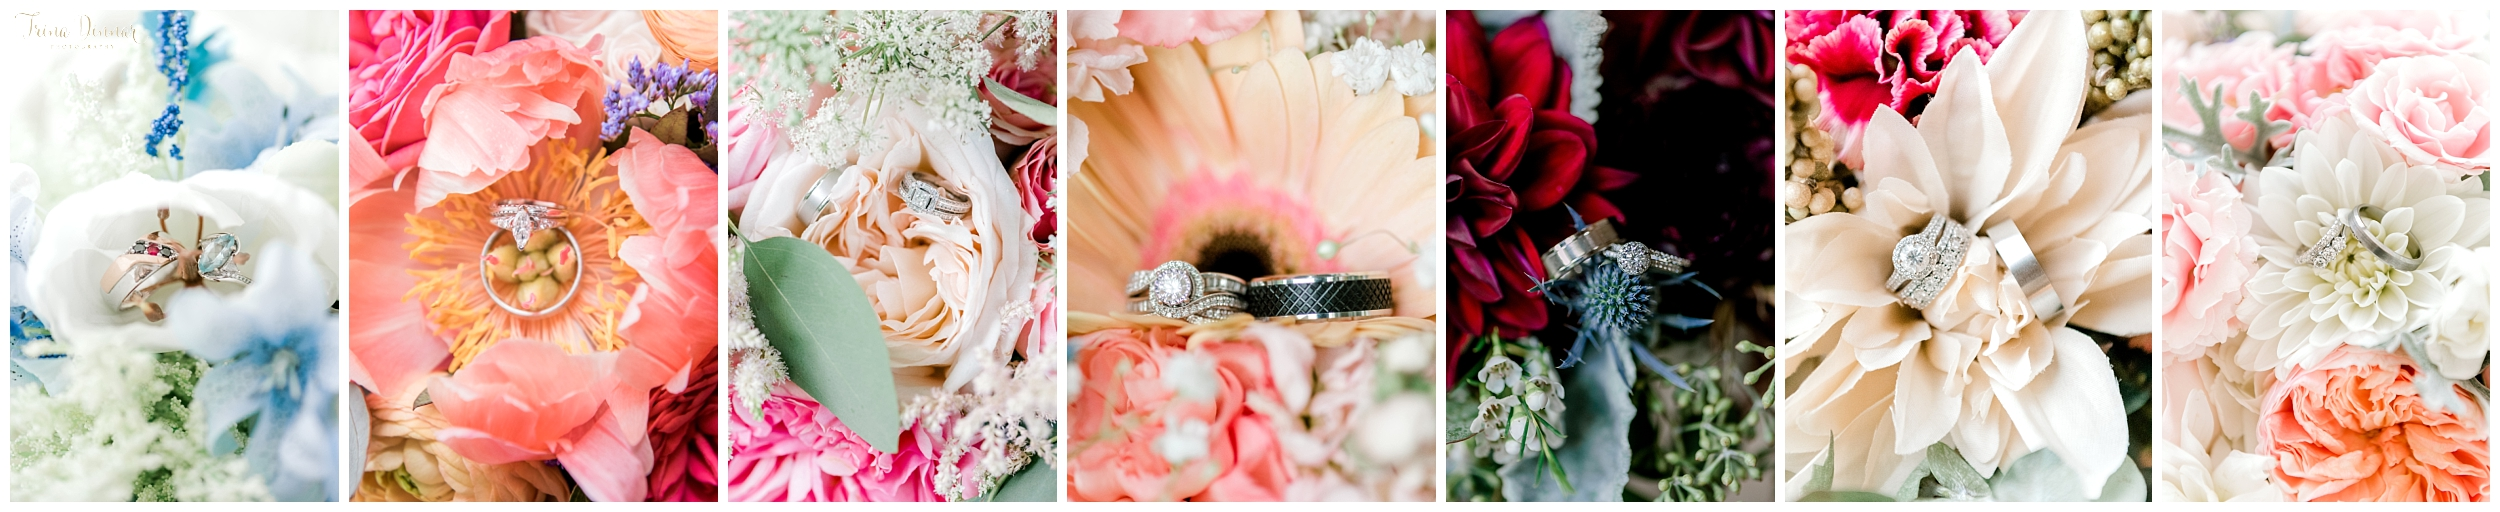 2018 Best Wedding Bouquets with Rings Photographed by Trina Dinnar.